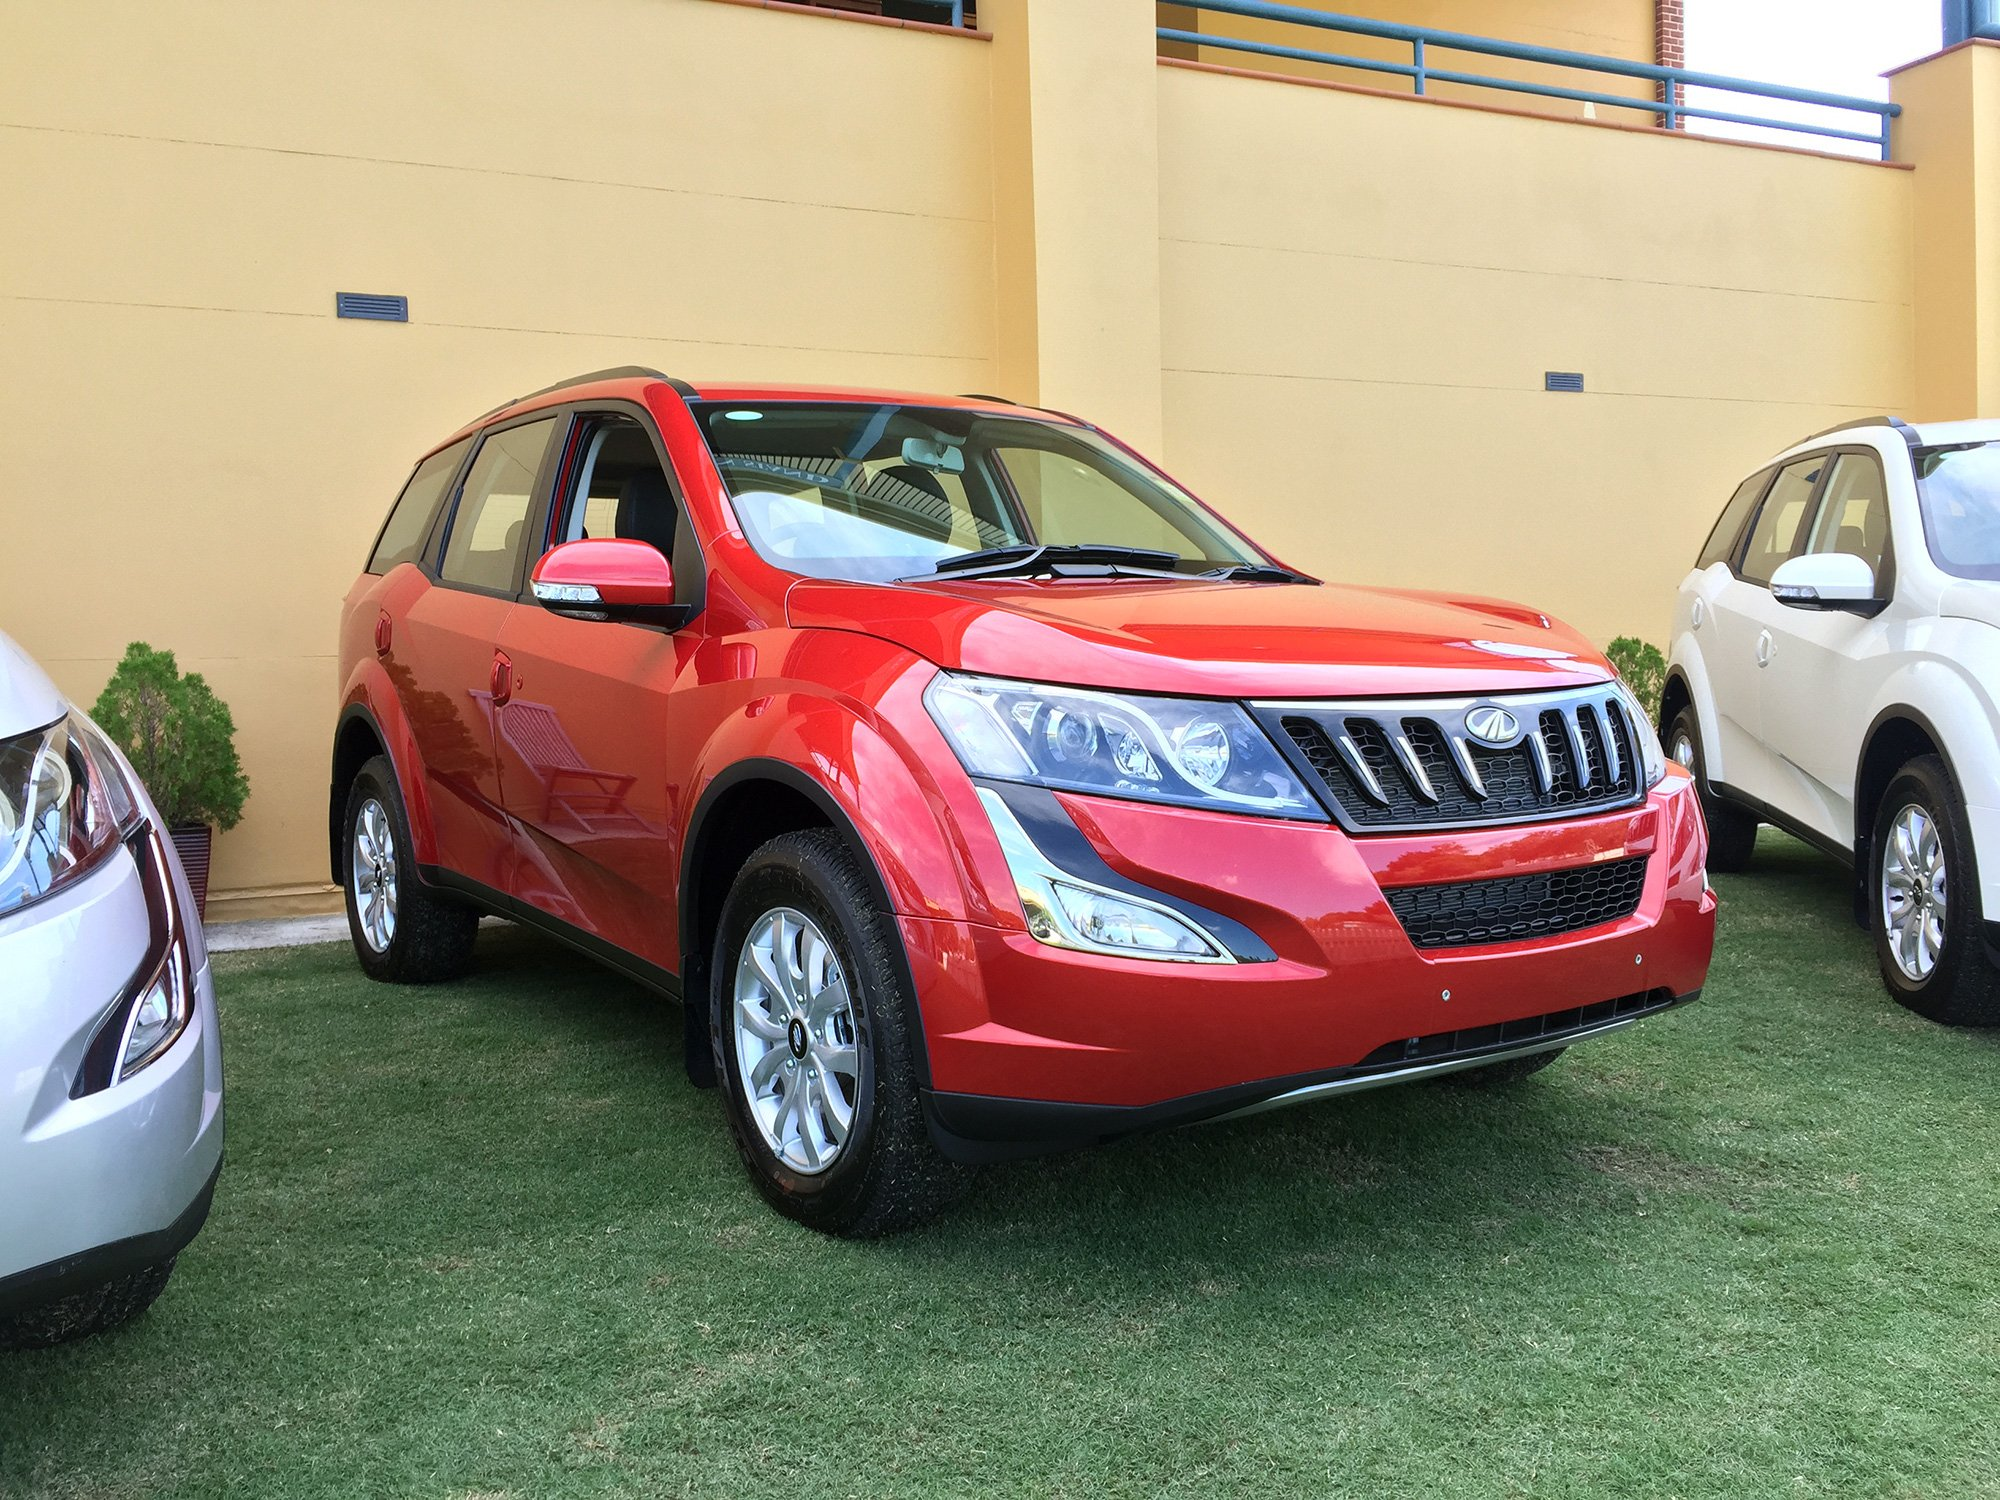 Mahindra Xuv500 W8 Automatic Pricing And Specifications Photos Caradvice